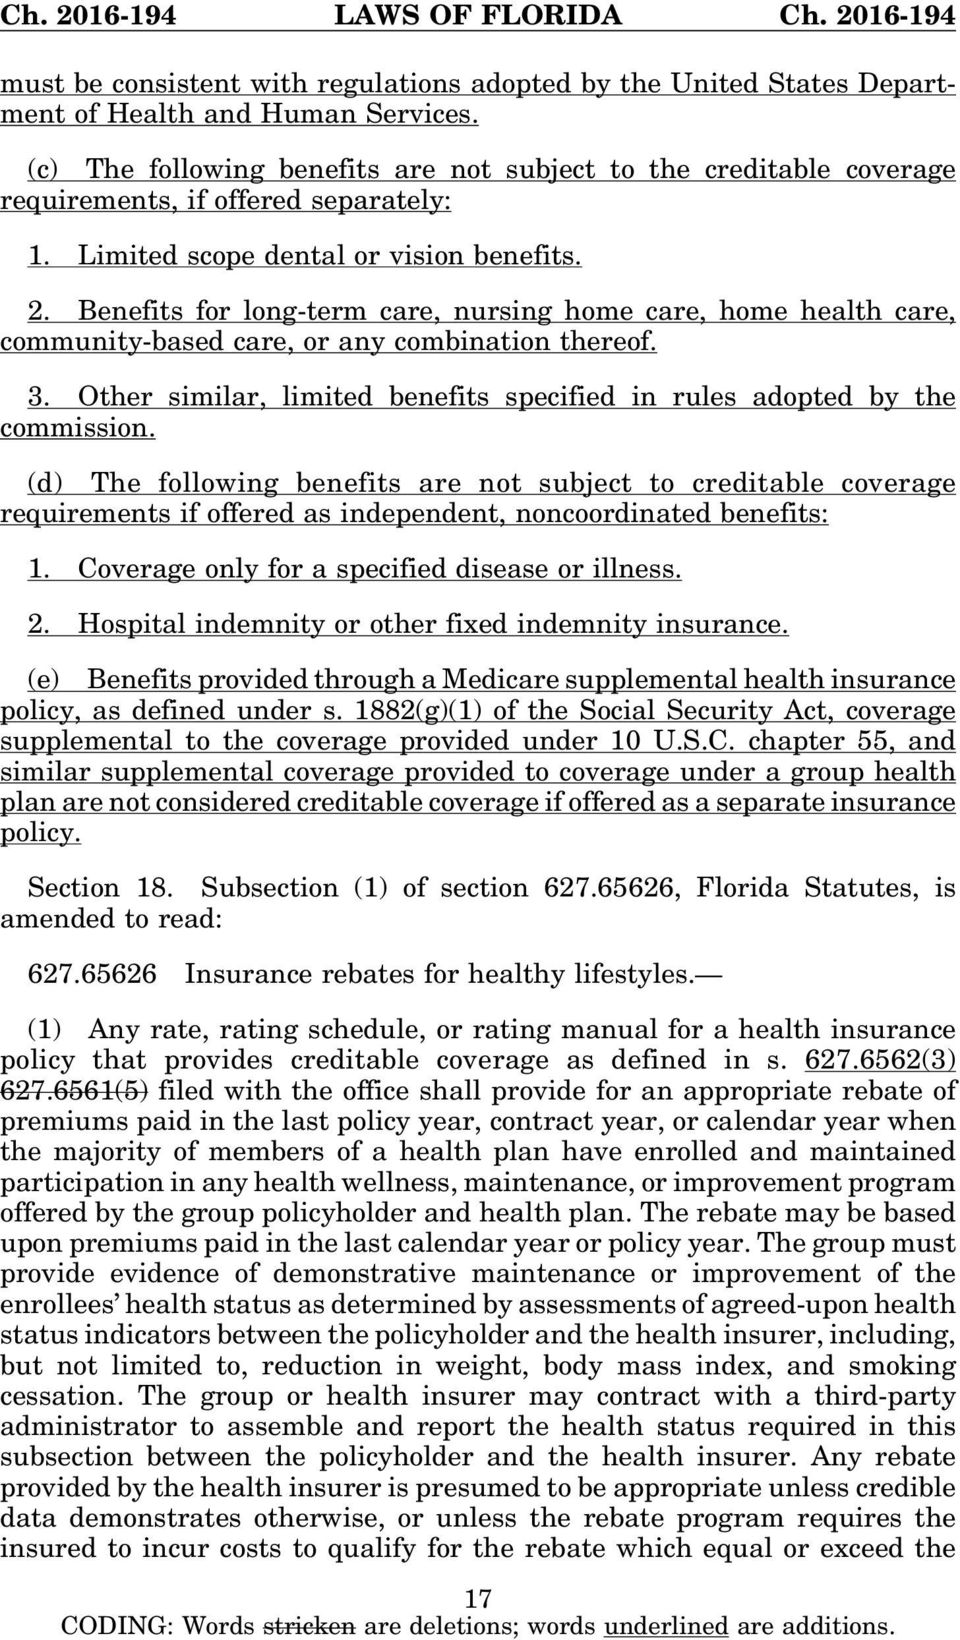 Benefits for long-term care, nursing home care, home health care, community-based care, or any combination thereof. 3. Other similar, limited benefits specified in rules adopted by the commission.